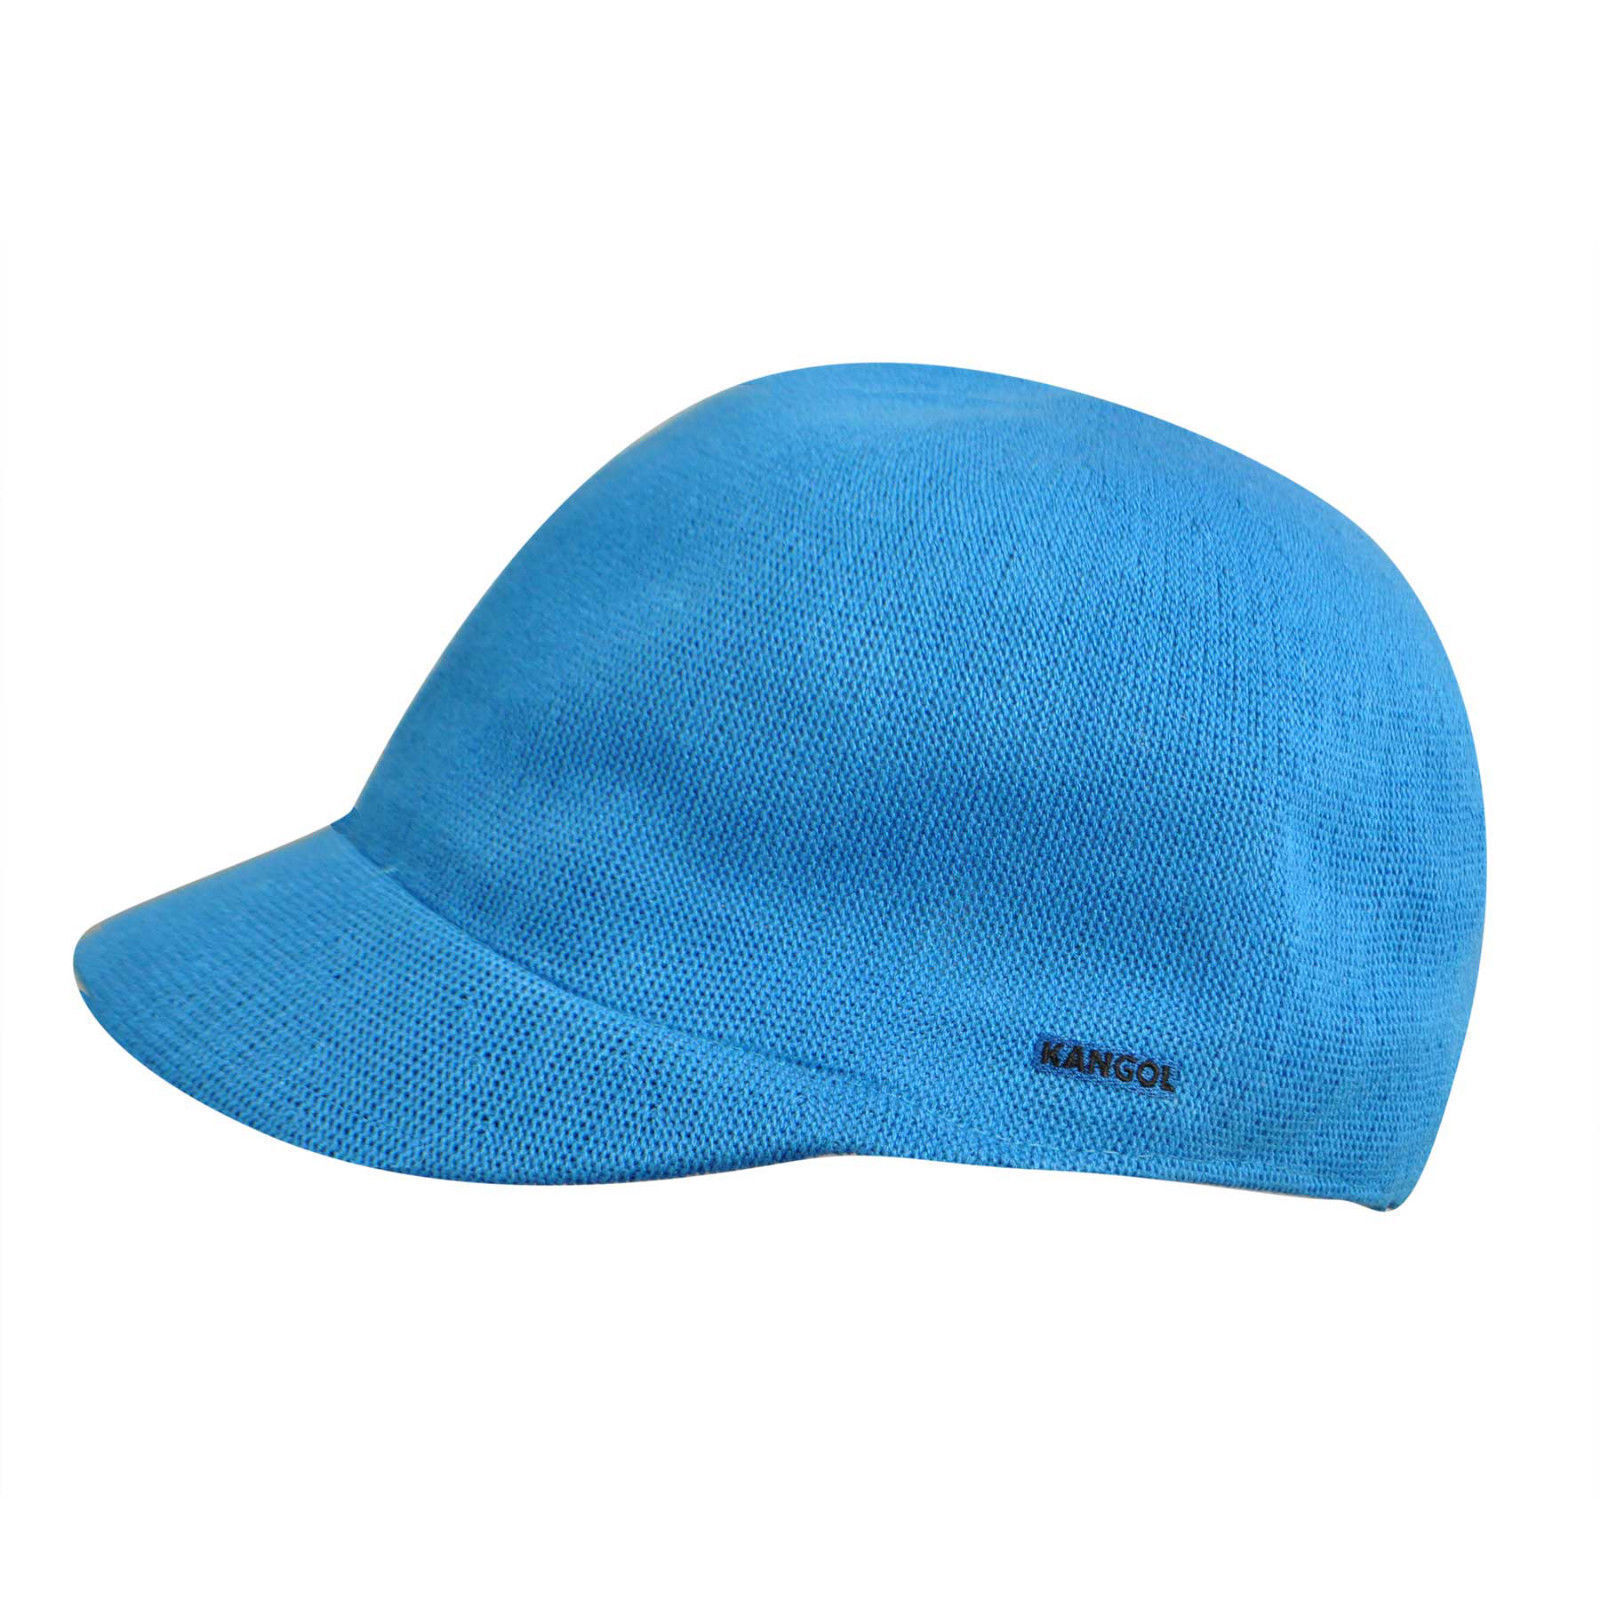 h m s Remaining. KANGOL Bamboo Adjustable Space Cap Baseball Hat K1718FA  Eco Friendly New bdd0a88c43f